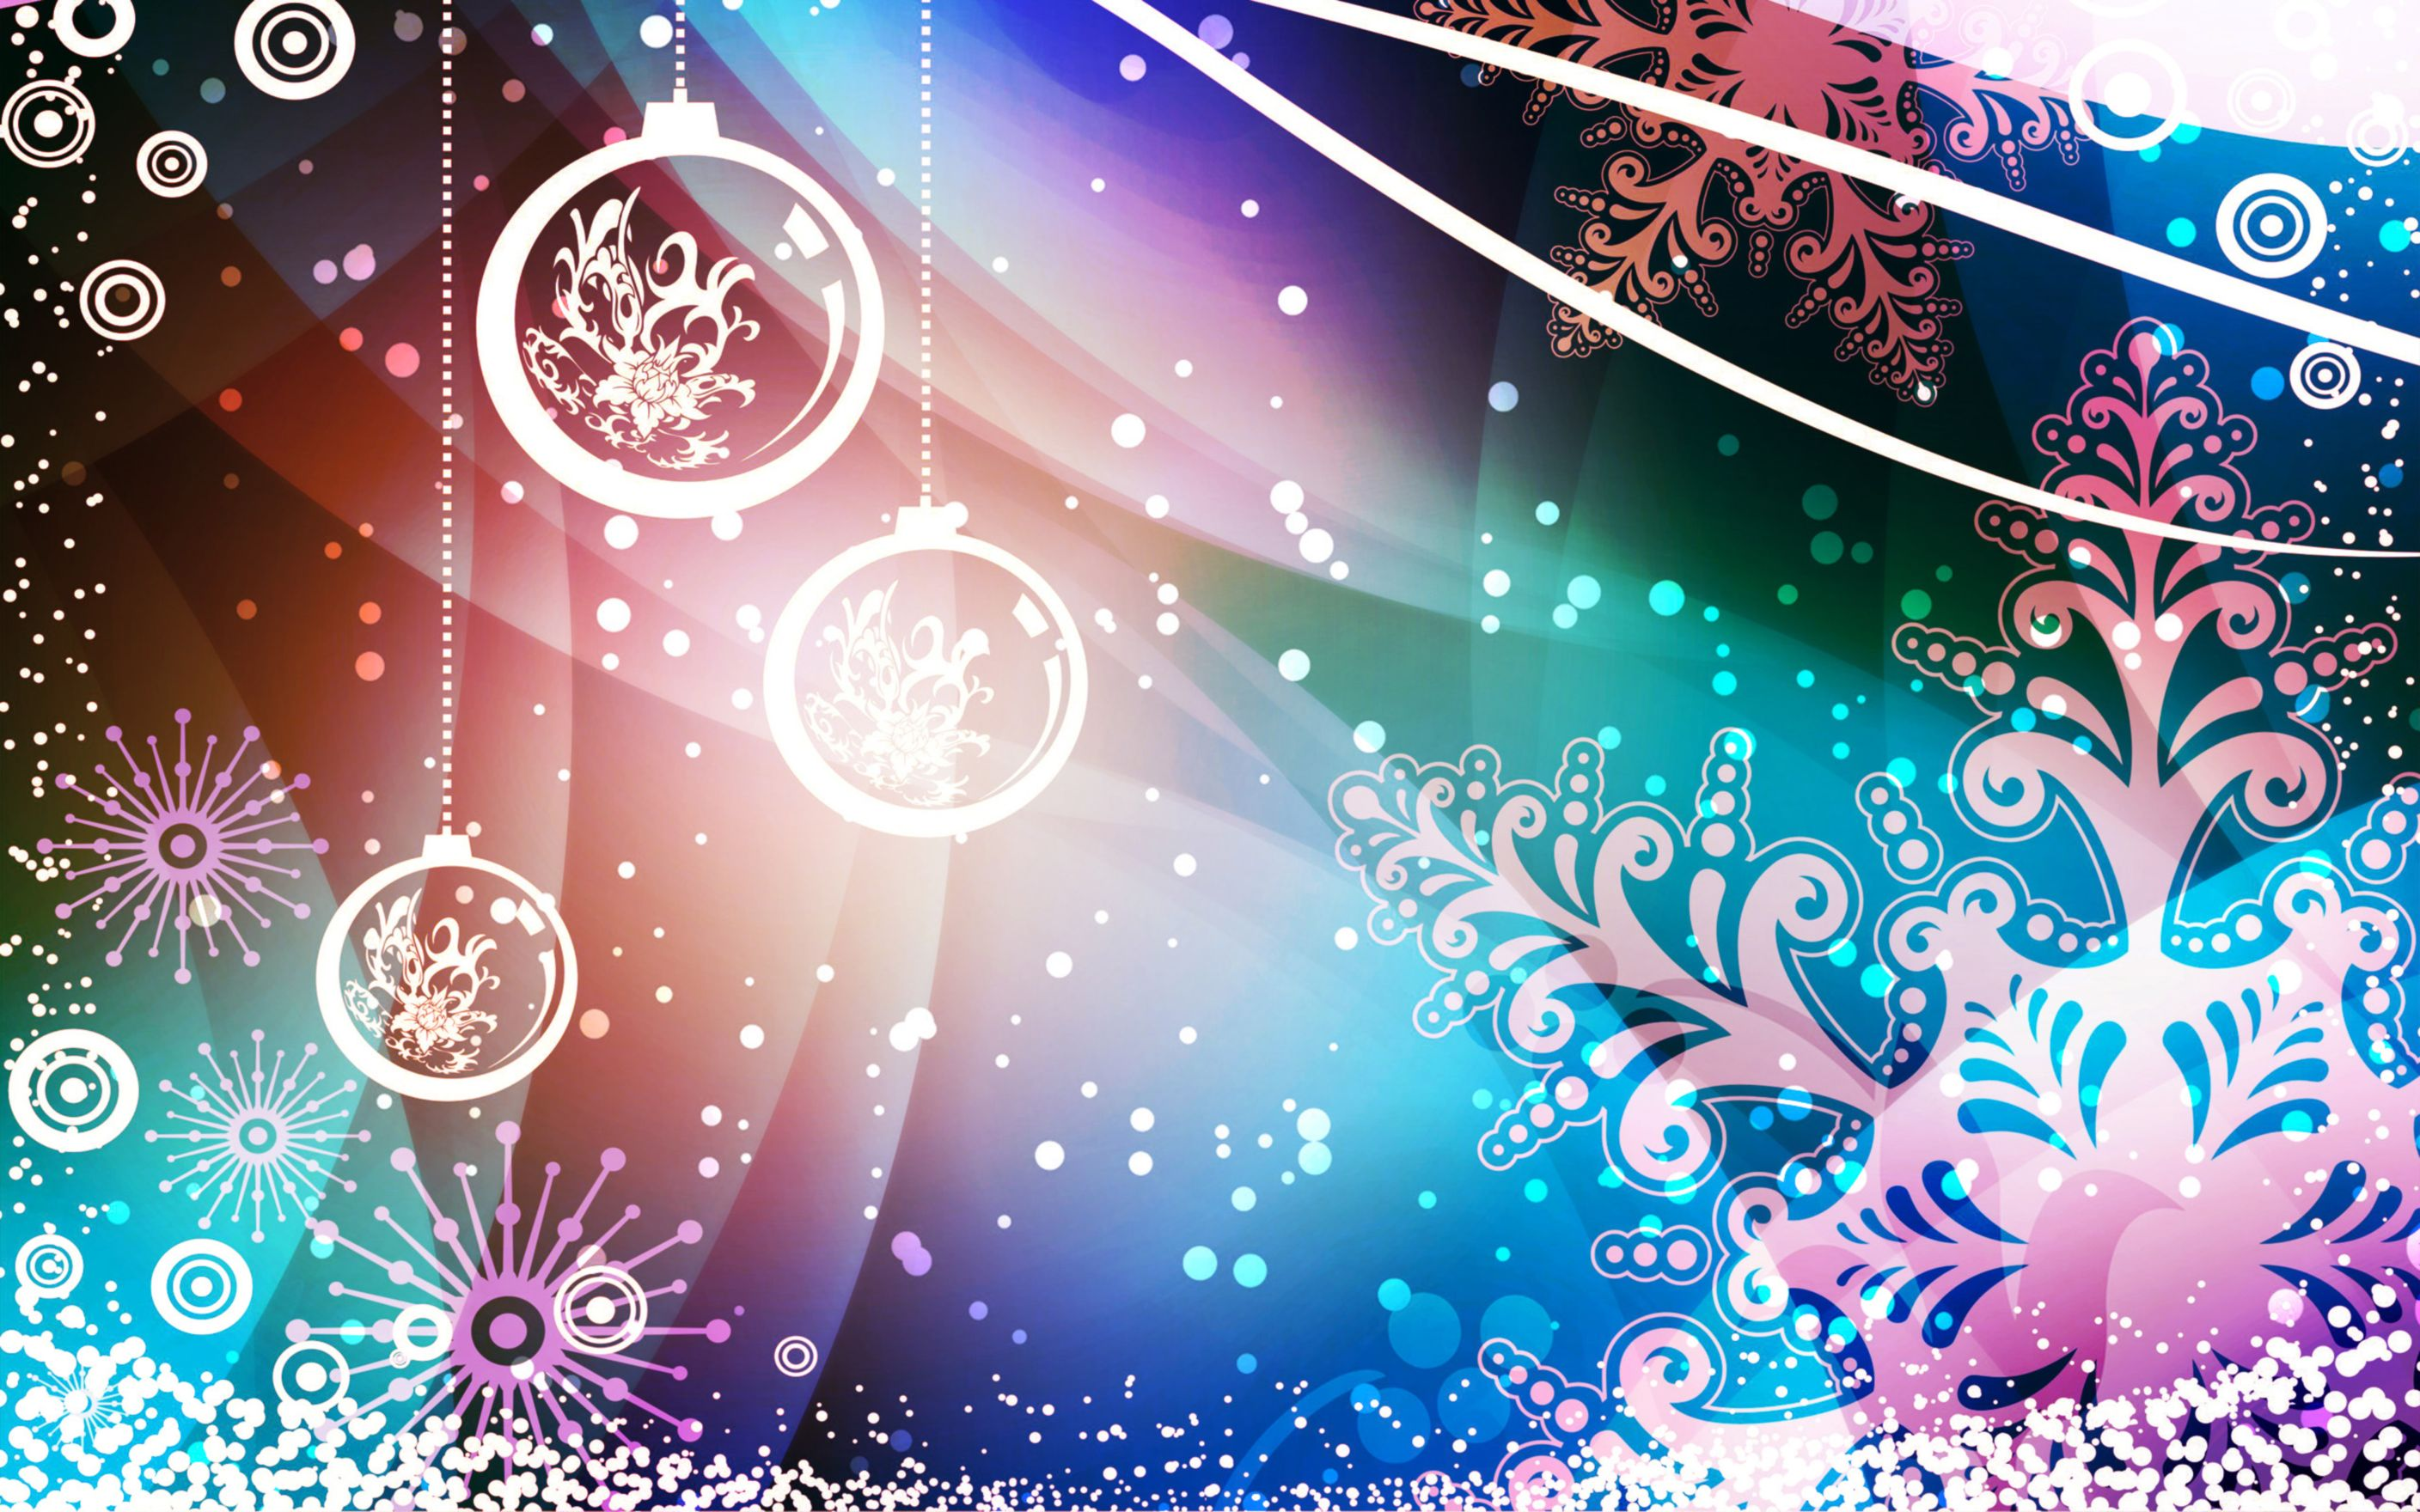 Download free HD Christmas Background Wallpaper, image